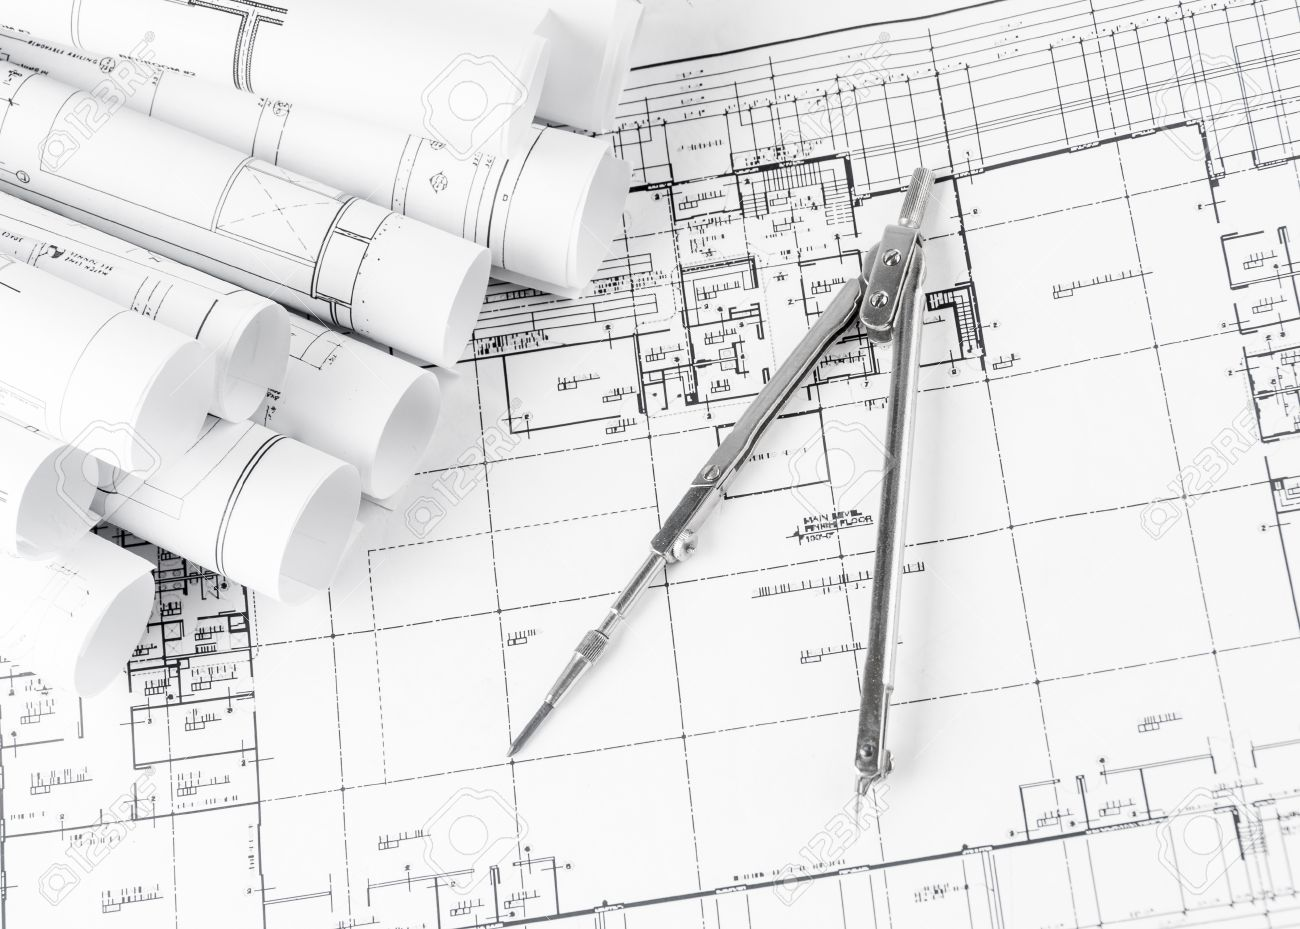 Architecture blueprints Factory Rolls Of Architecture Blueprints And House Plans On The Table And Drawing Compass Stock Photo Wikipedia Rolls Of Architecture Blueprints And House Plans On The Table